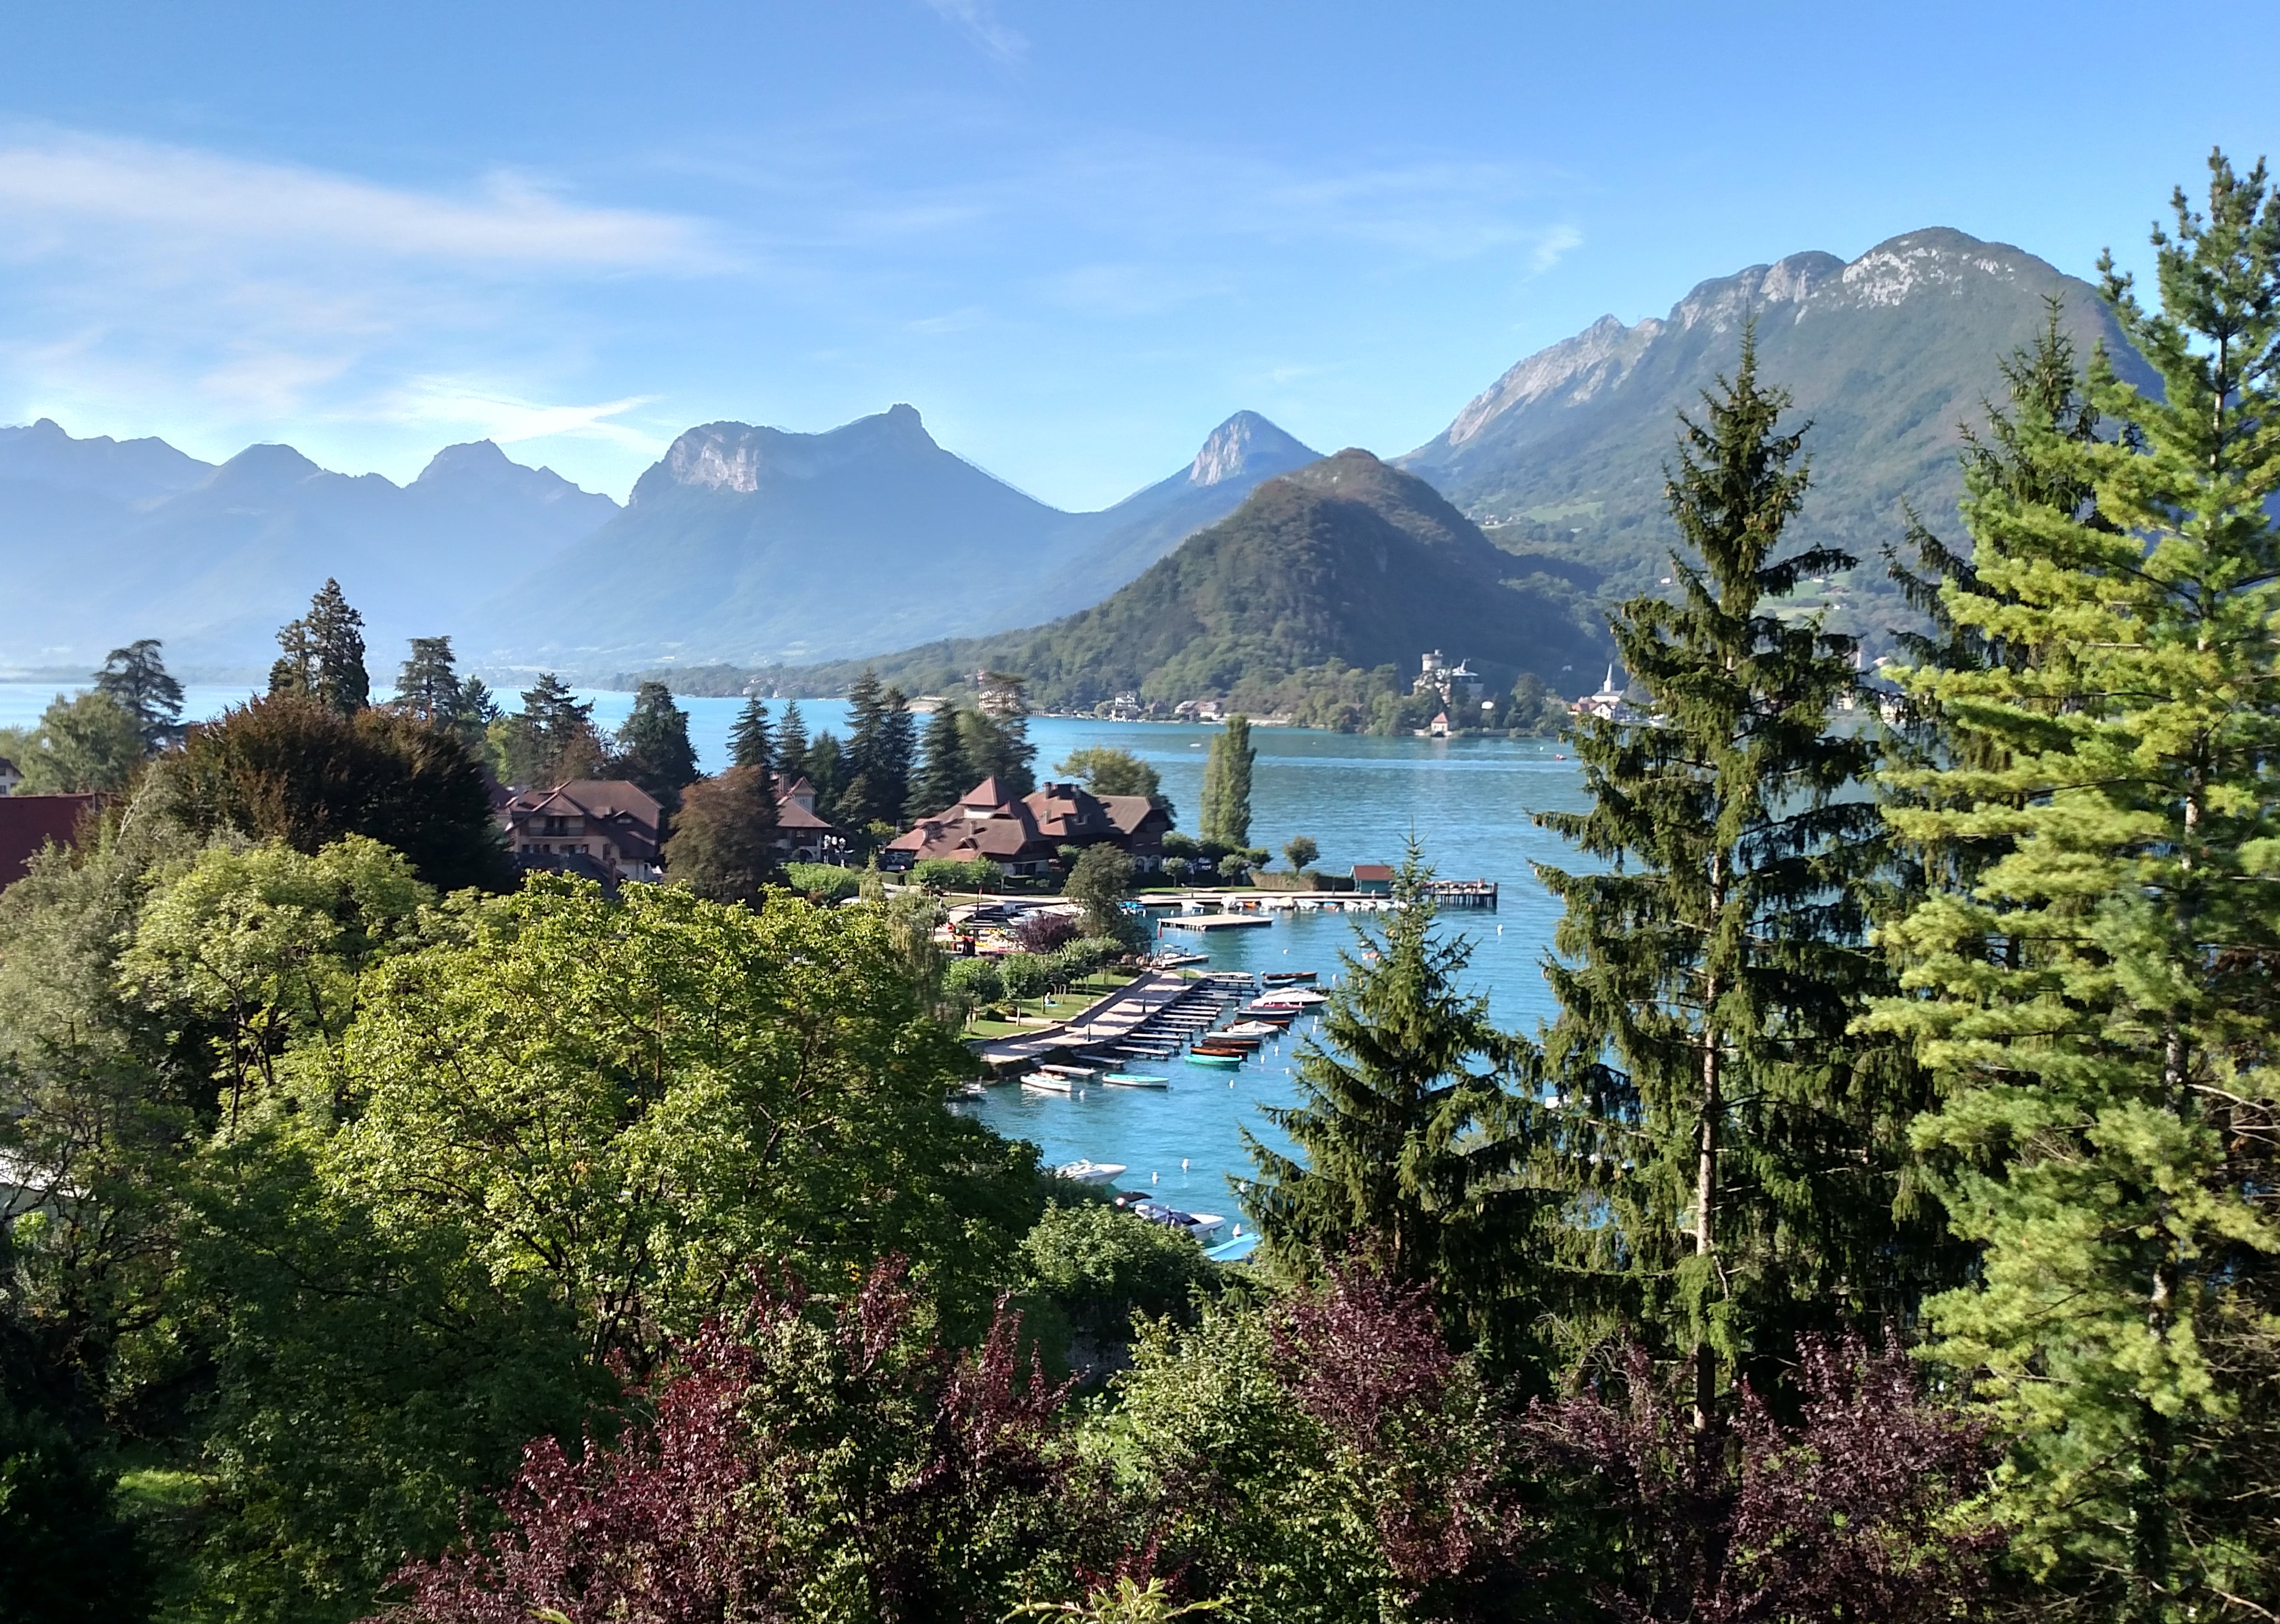 A view of green pine trees, Lake Annecy, and mountains the background.